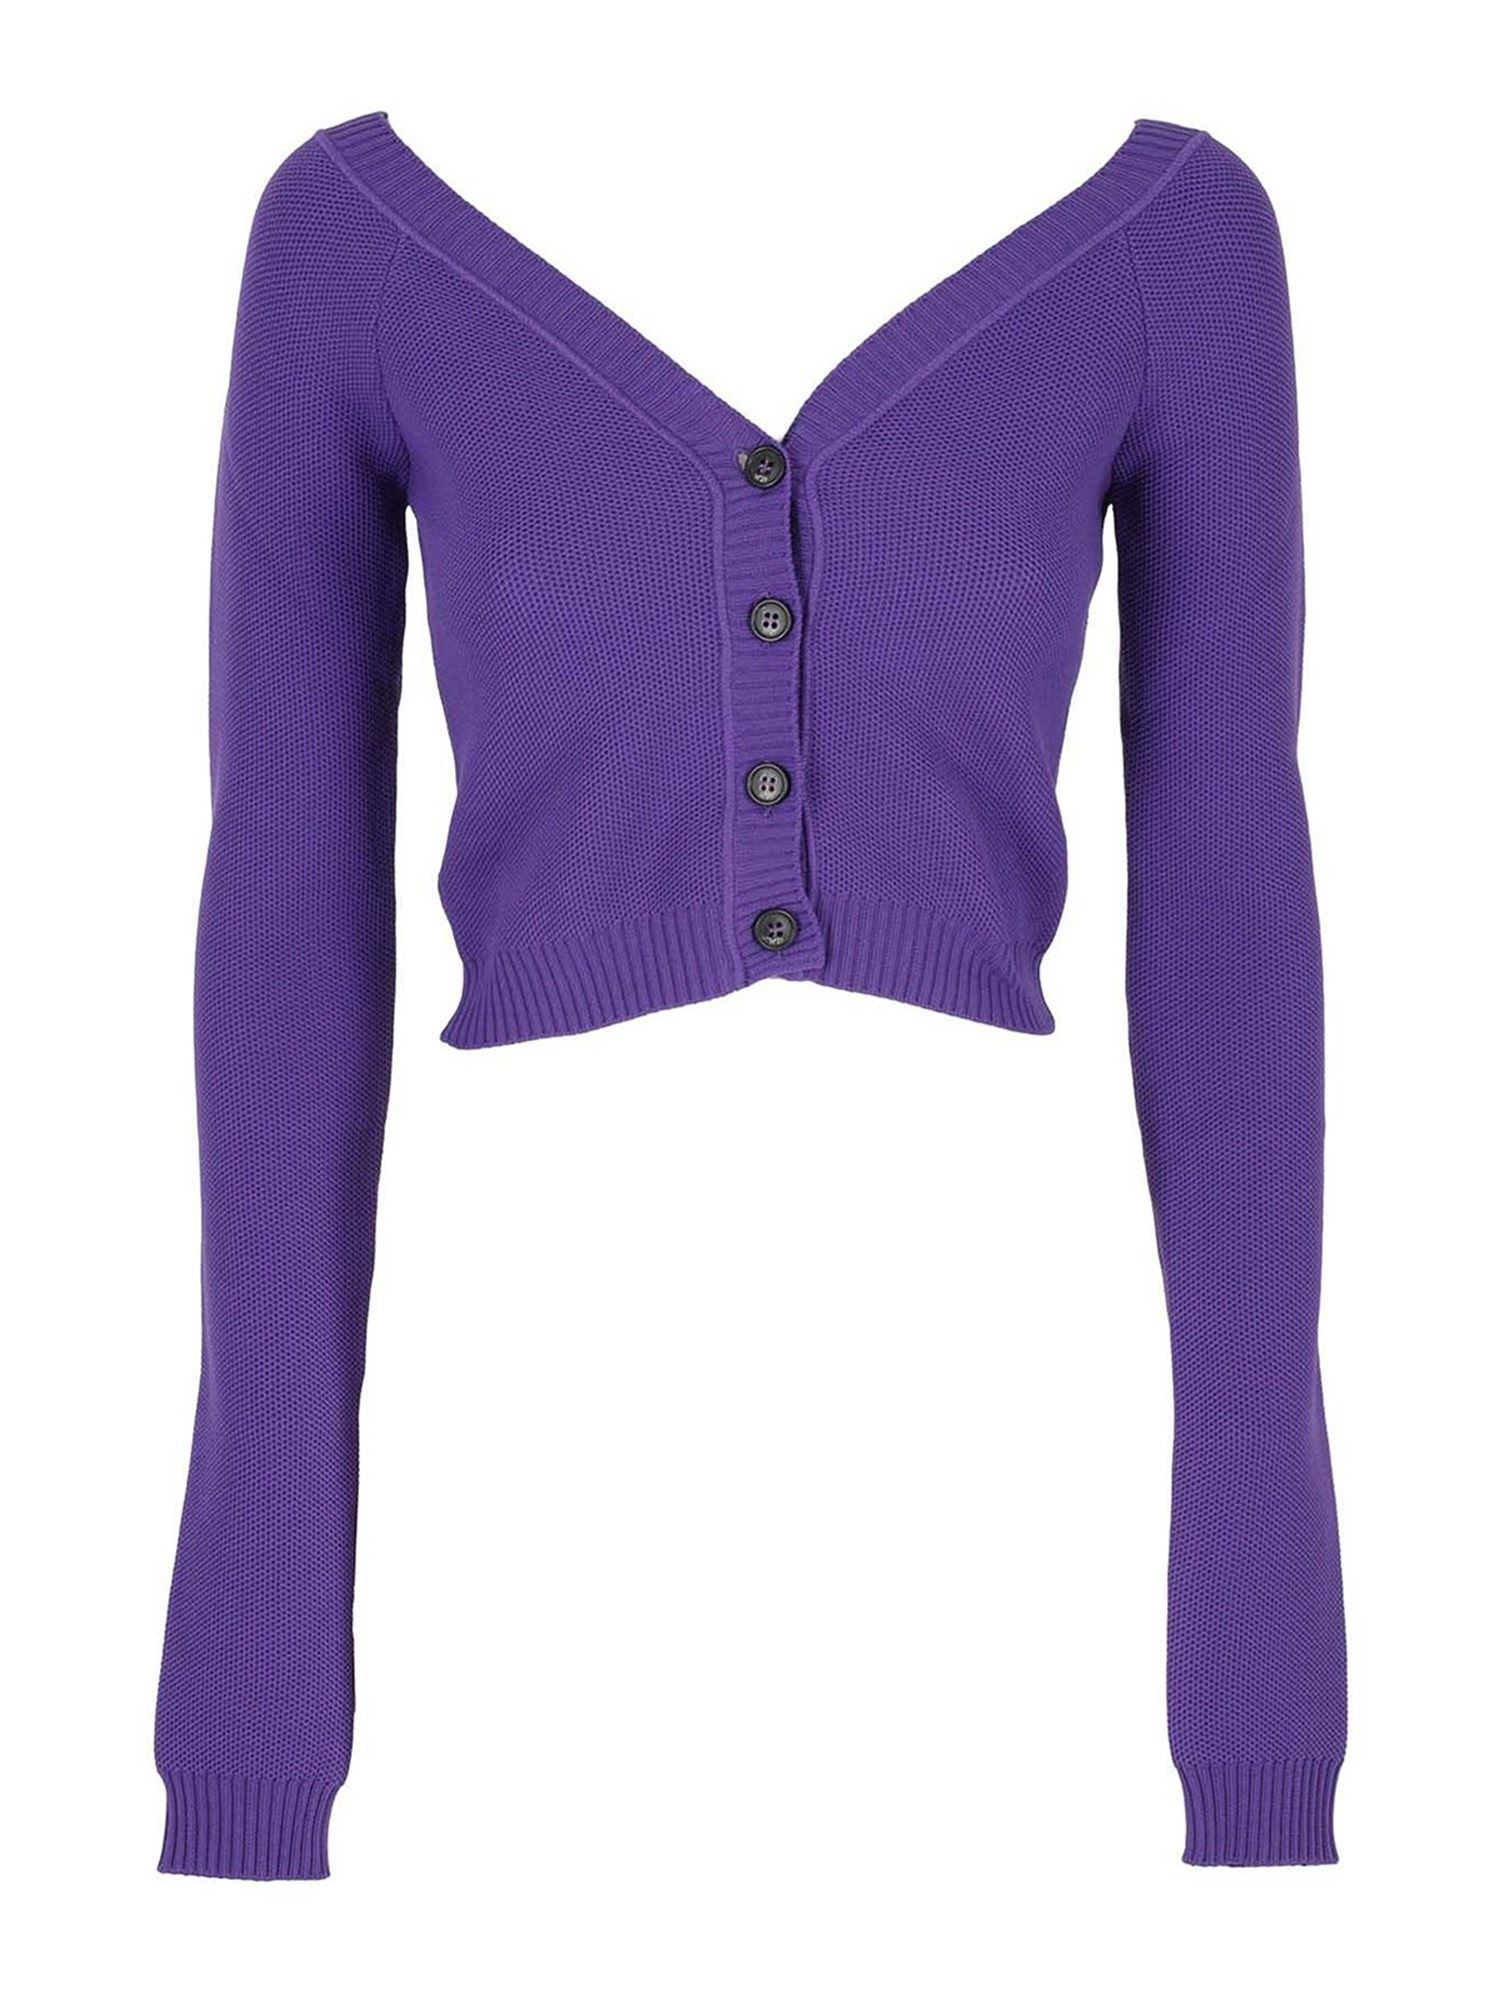 N°21 BUTTONED CROPPED CARDIGAN IN VIOLET